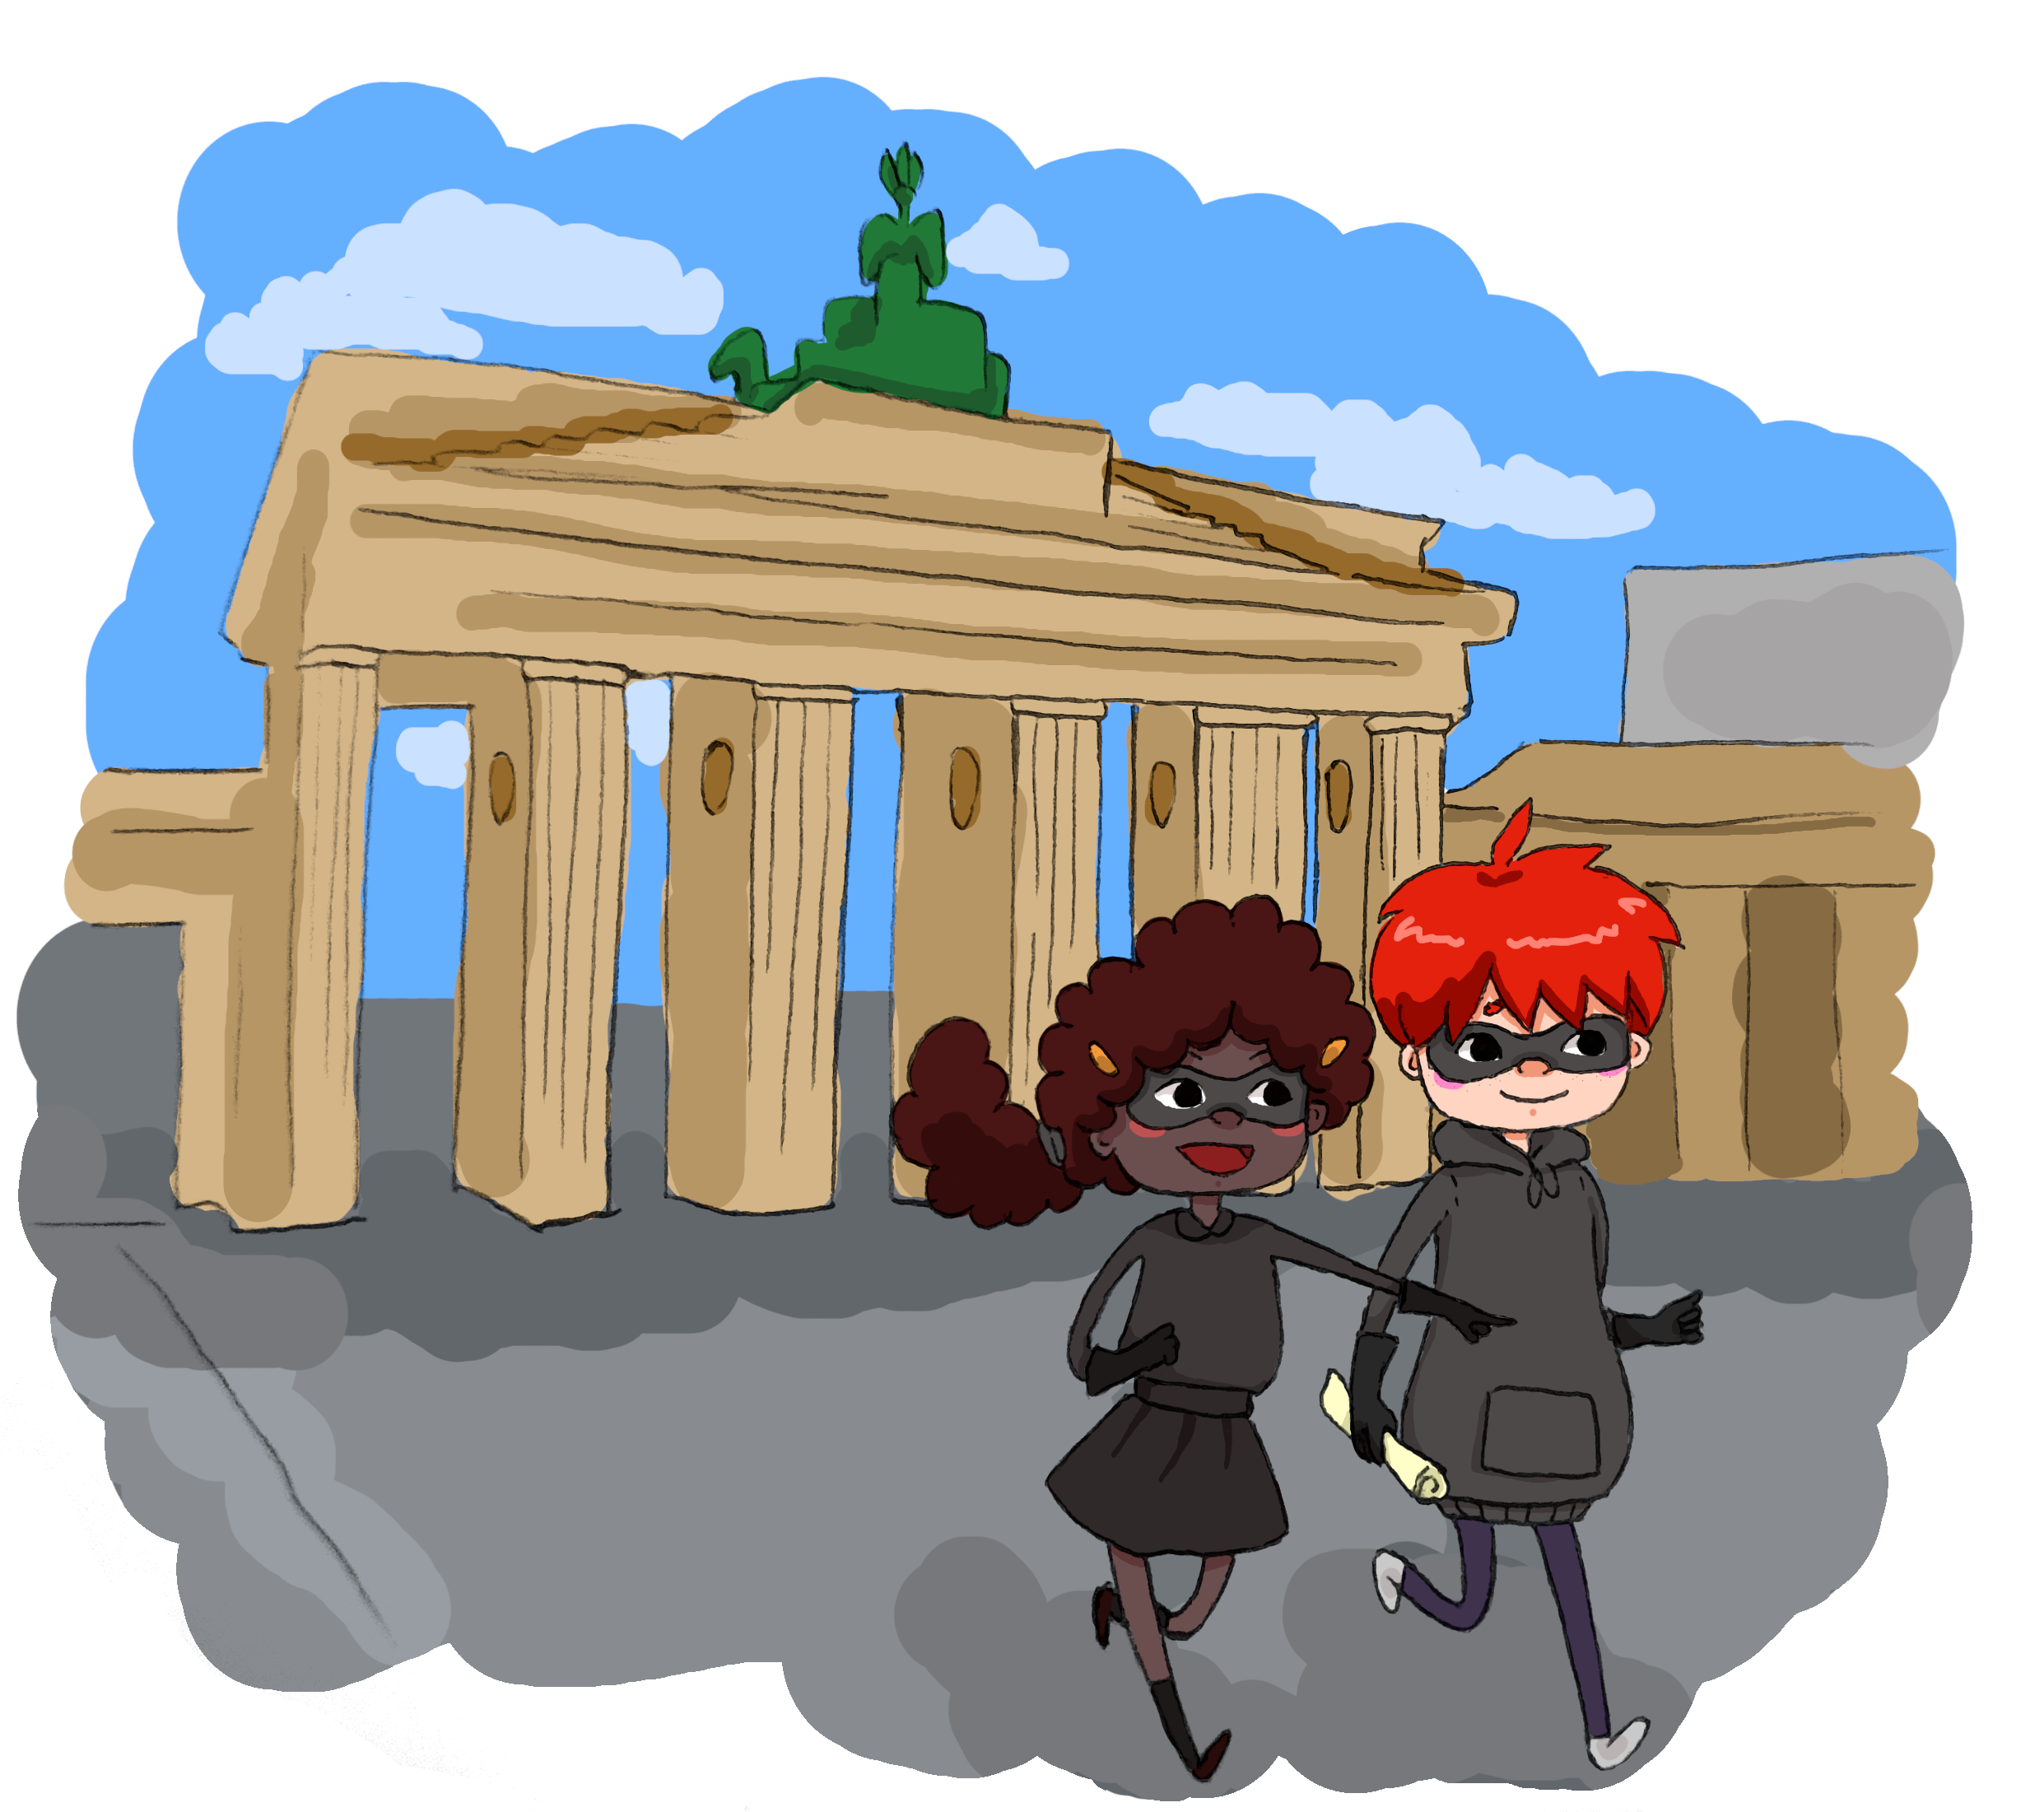 Ben and Kate in full disguise, passing the Brandenburger Tor.